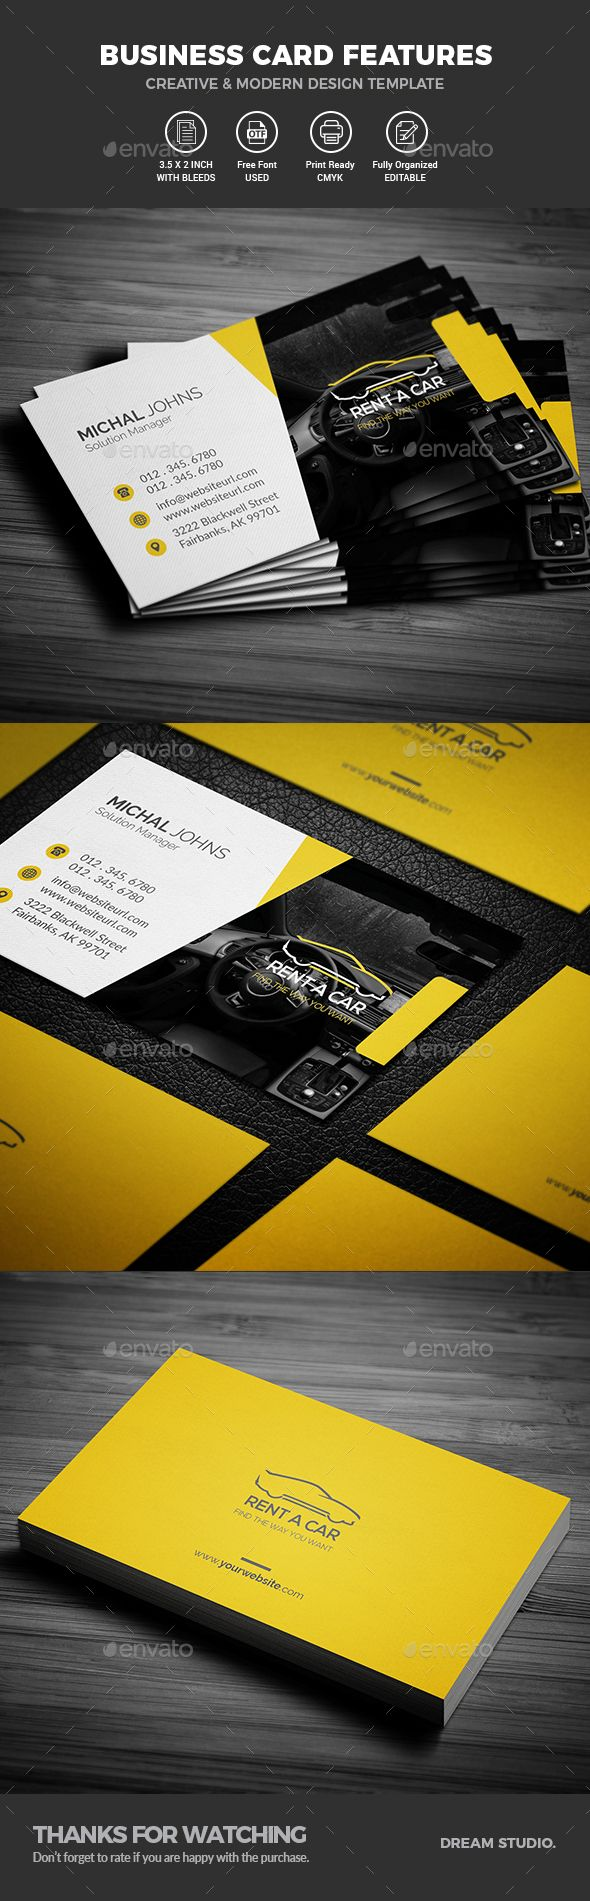 #Business #Cards - Business Cards Print #Templates Download here: https://graphicriver.net/item/business-cards/20131190?ref=alena994